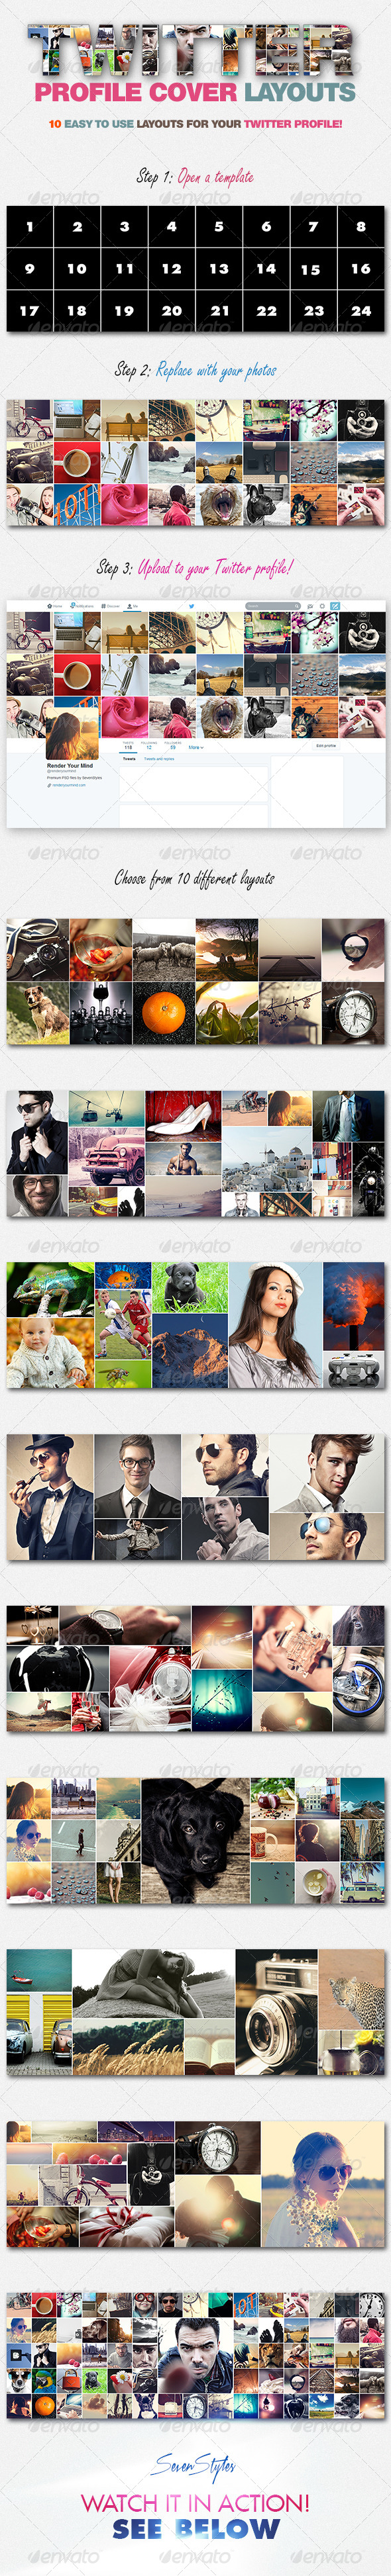 10 Twitter Profile Cover Templates